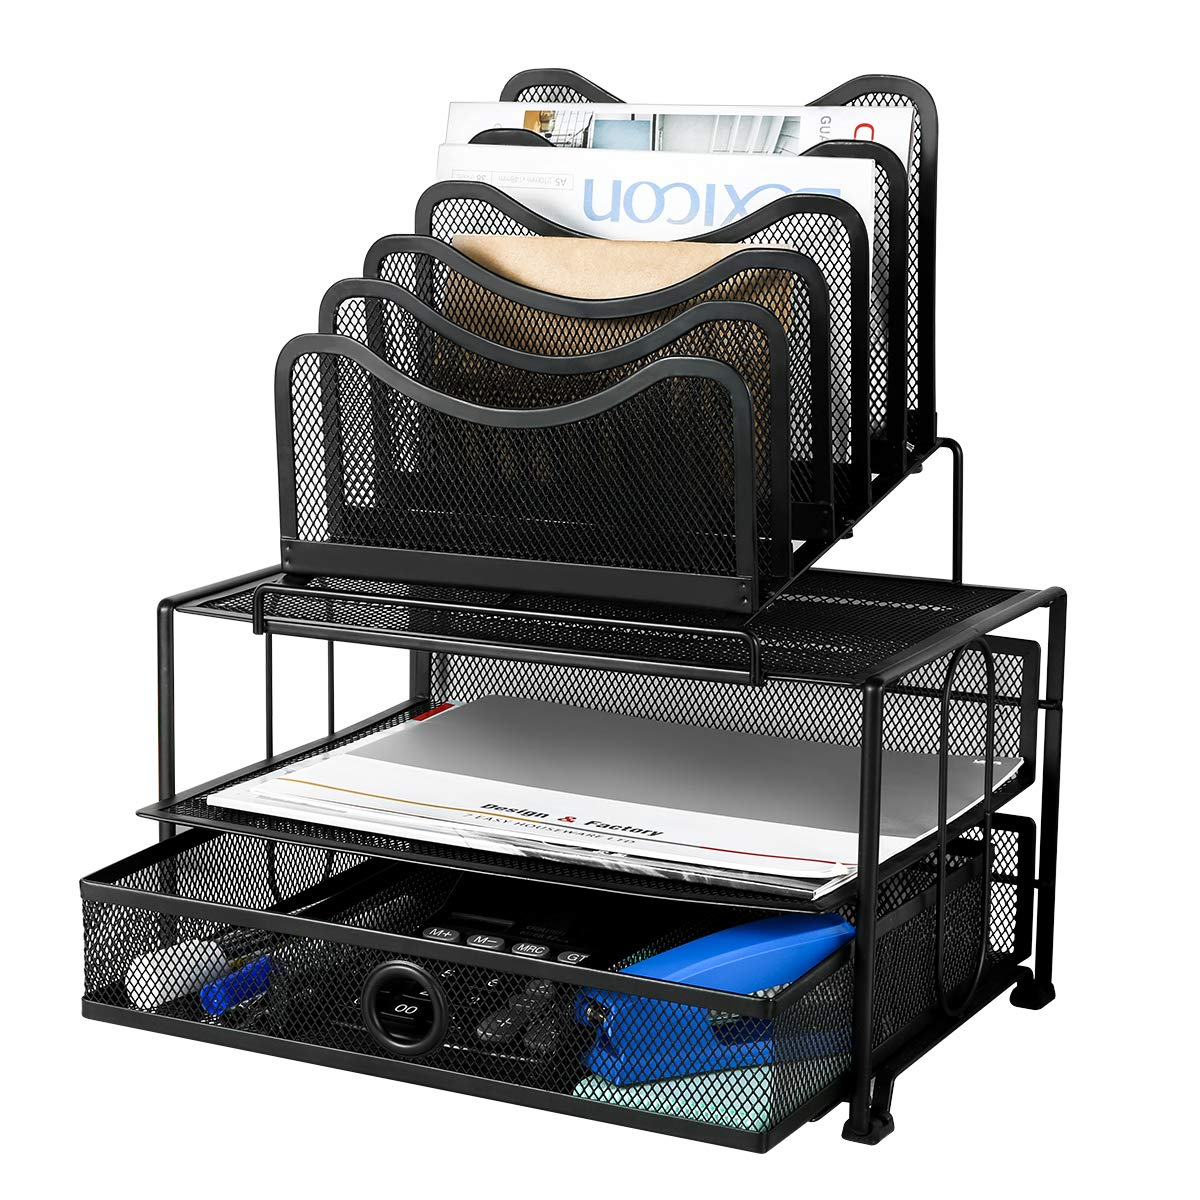 Homemaxs Desk Organizer Mesh with Sliding Drawer, 5 Removable Stacking Sorter Sections and Double Tray for Office Black